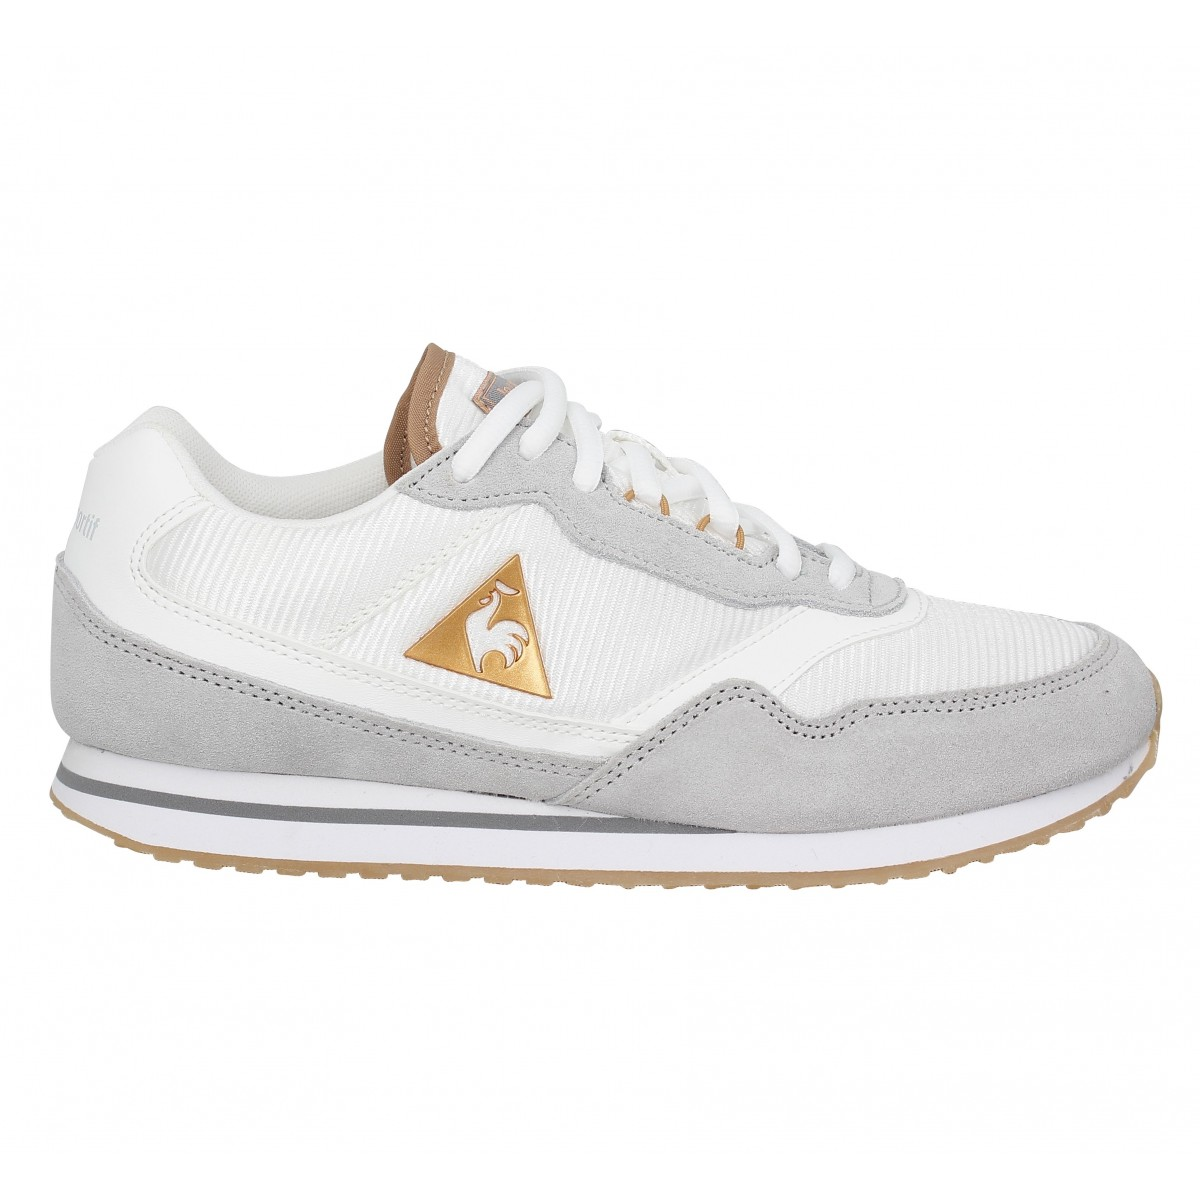 soldes le coq sportif louise toile femme blanc femme fanny chaussures. Black Bedroom Furniture Sets. Home Design Ideas